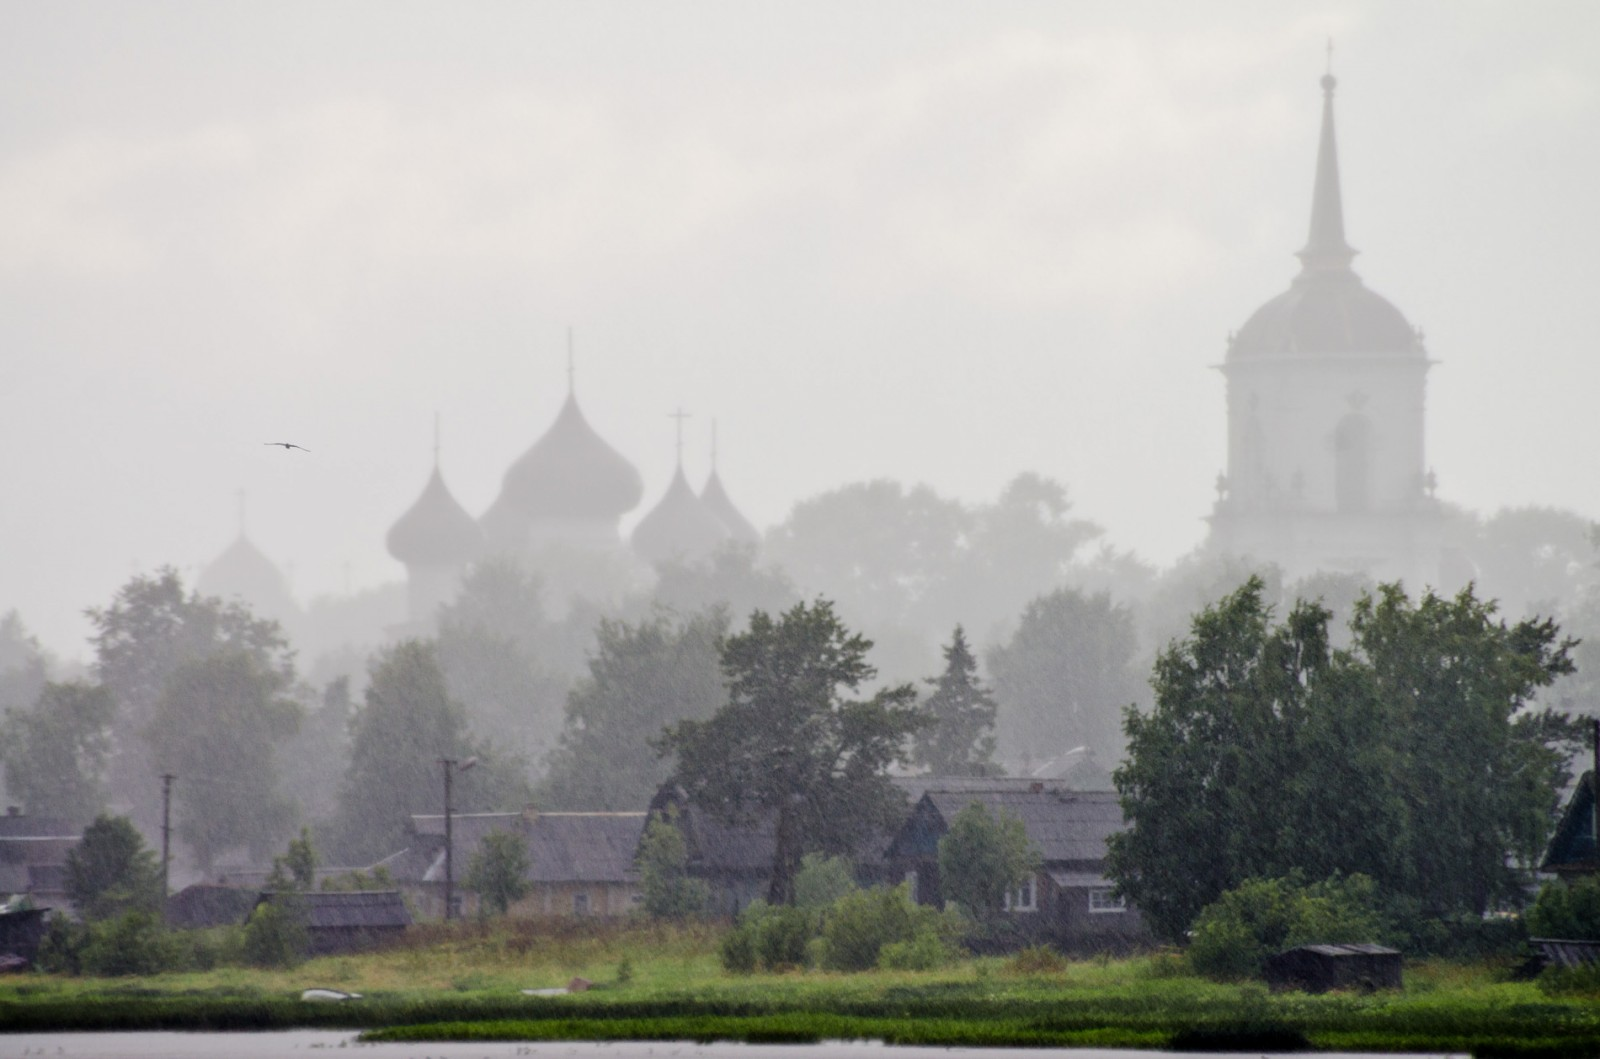 Soul of Russia: Exhibition of landscape photography in Moscow - 7